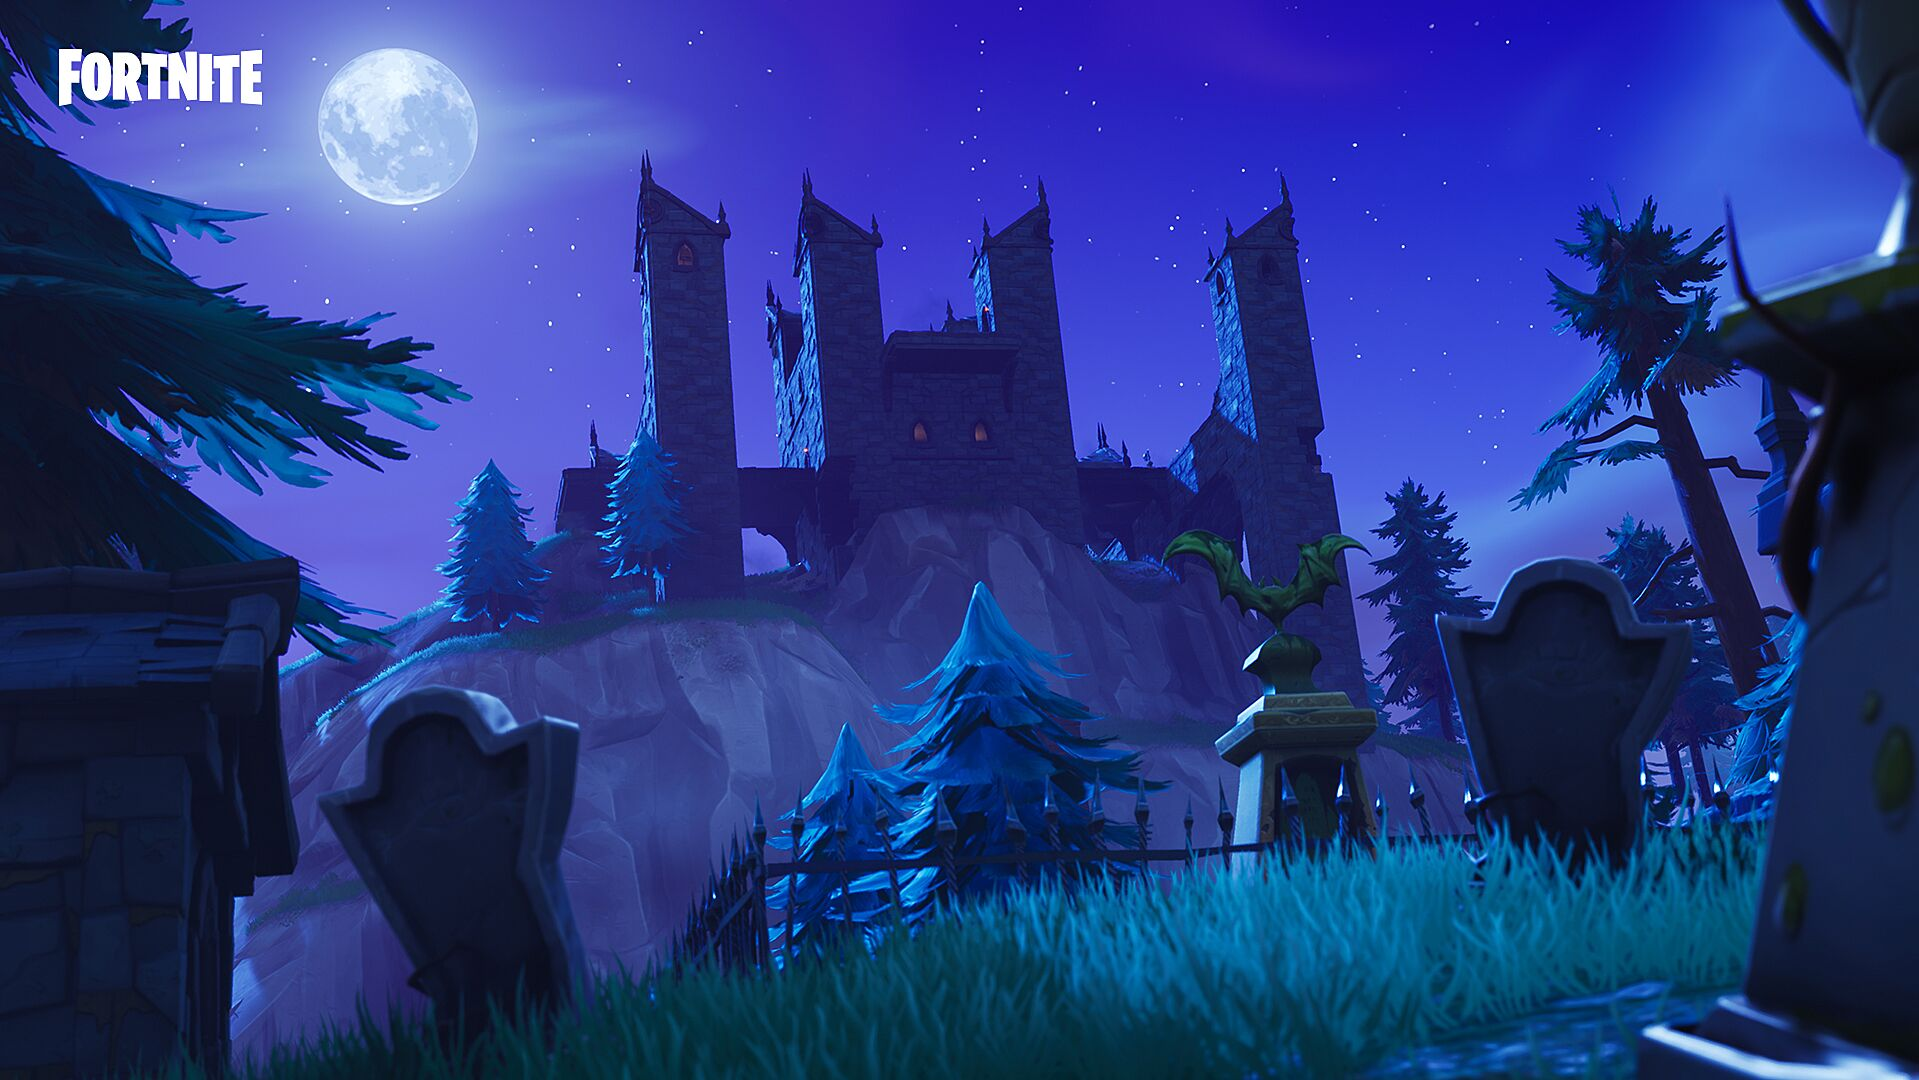 Fortnite Haunted Castle Sc Ranked Mode Is Here